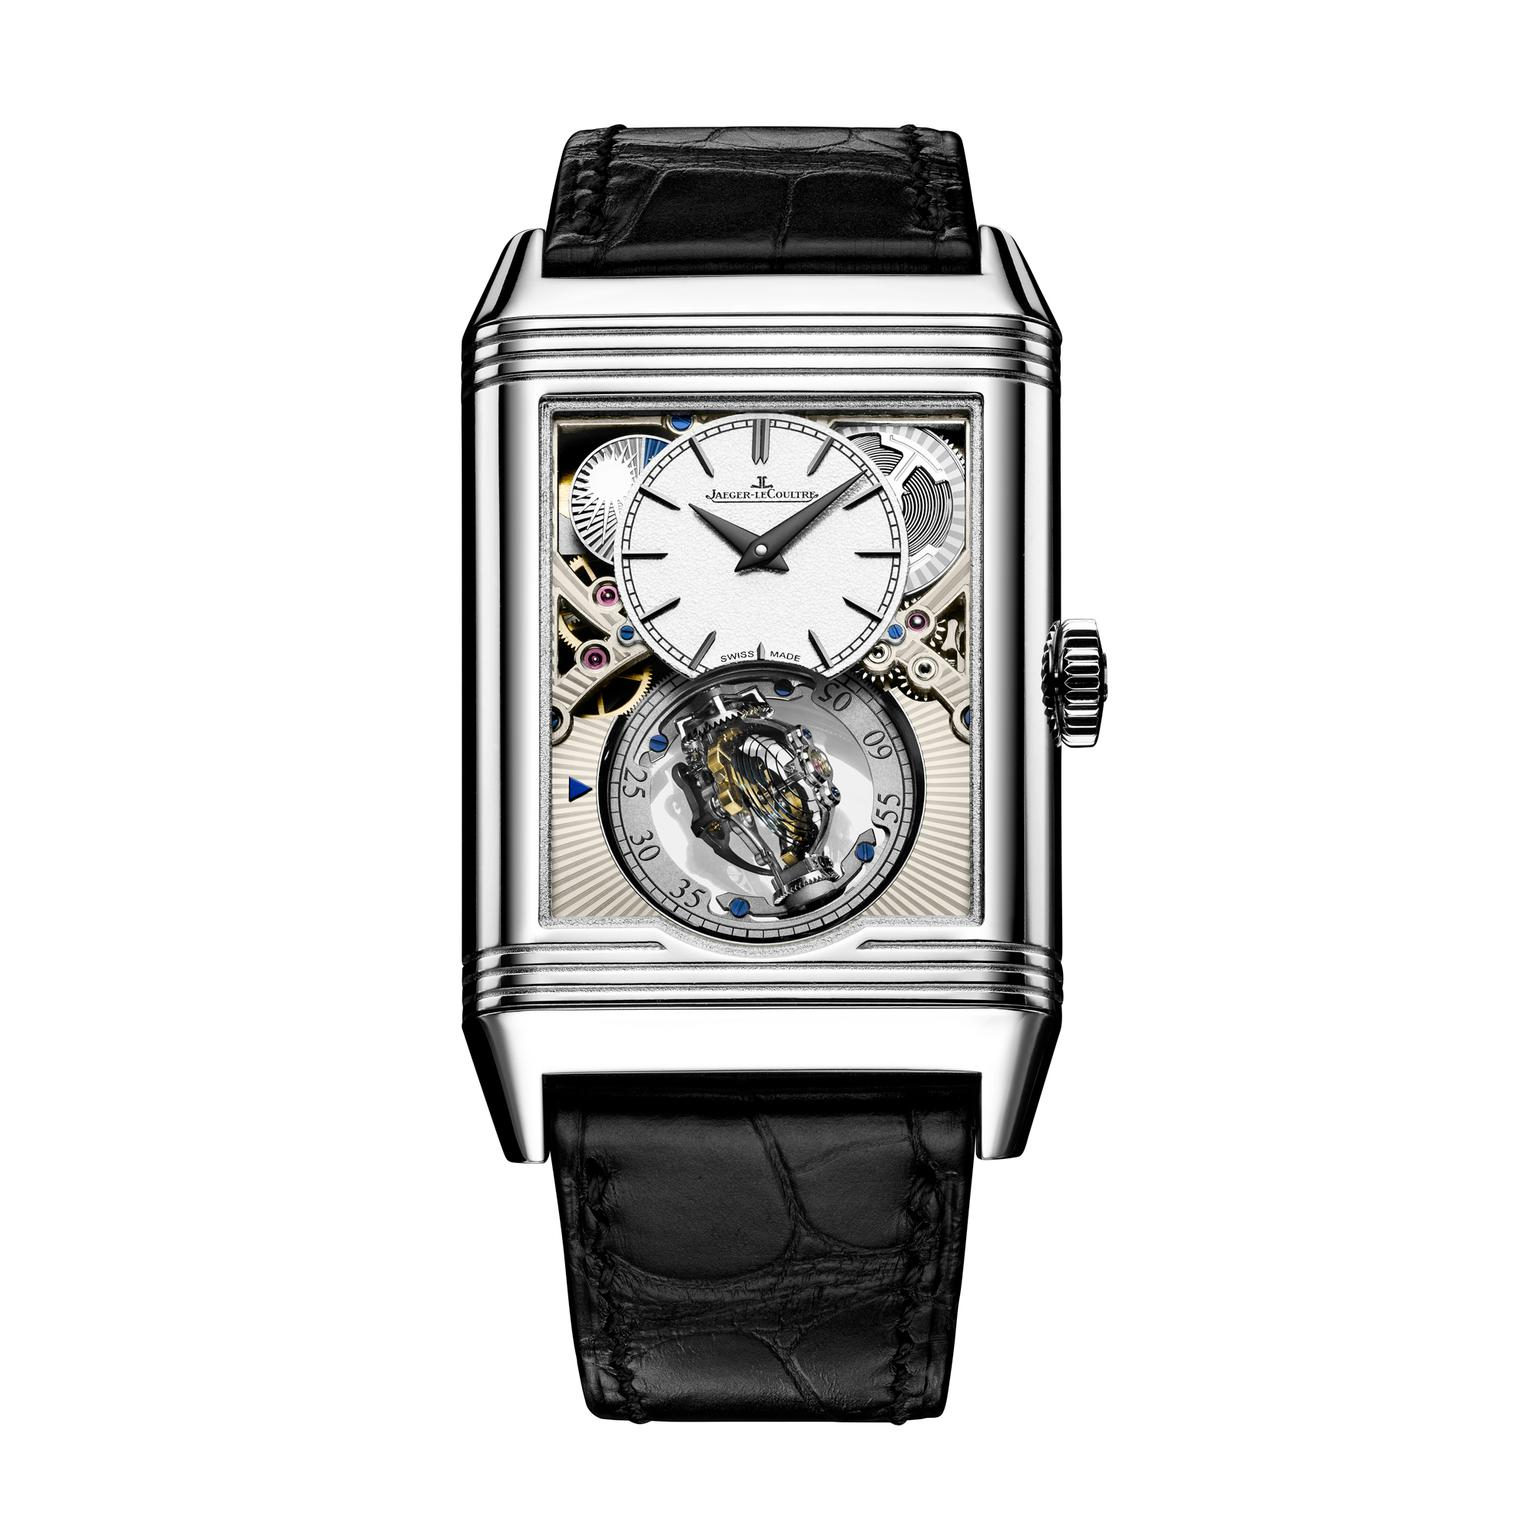 Jaeger-LeCoultre Reverso Tribute Gyrotourbillon watch